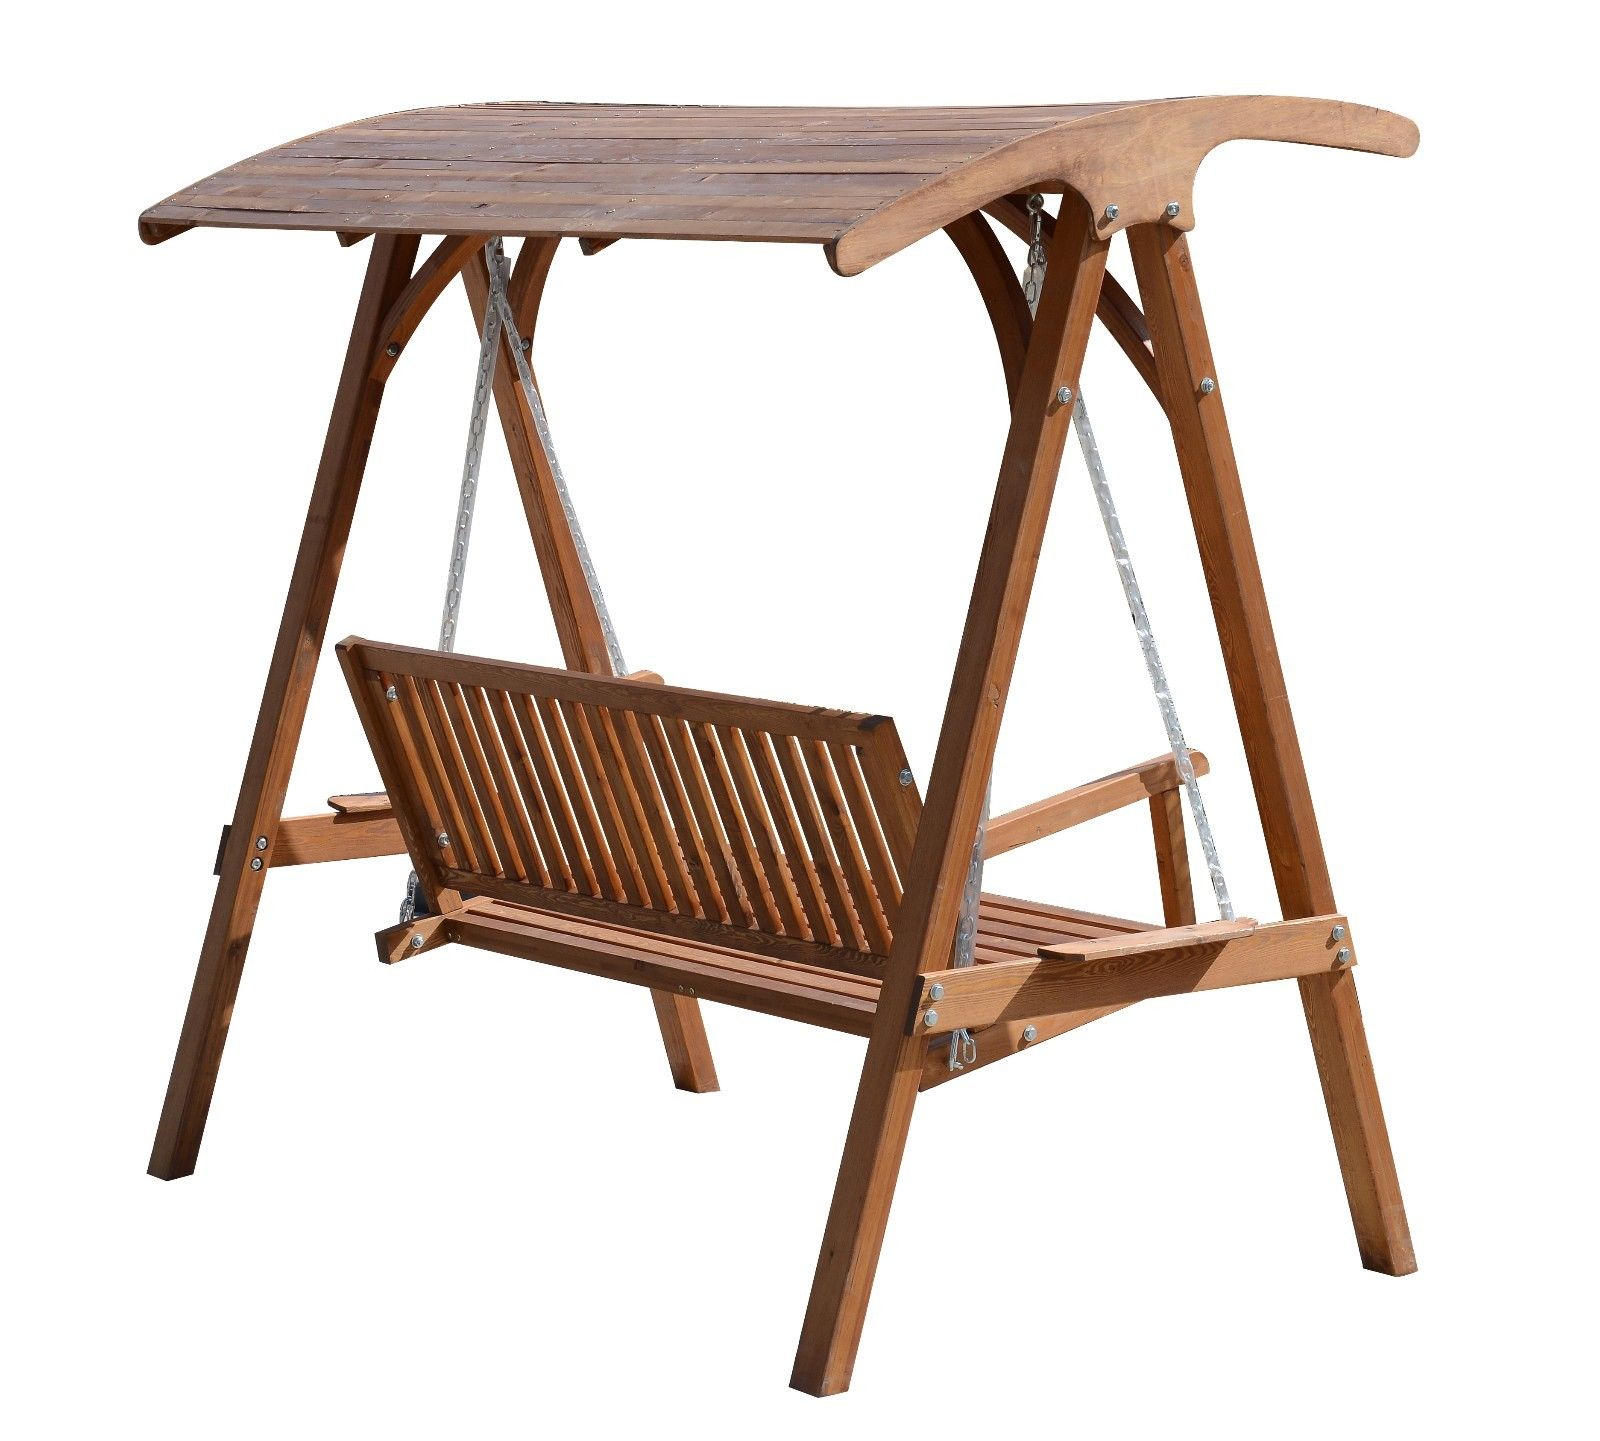 Outsunny Wooden Garden Swing Chair Seat Hammock Bench ...